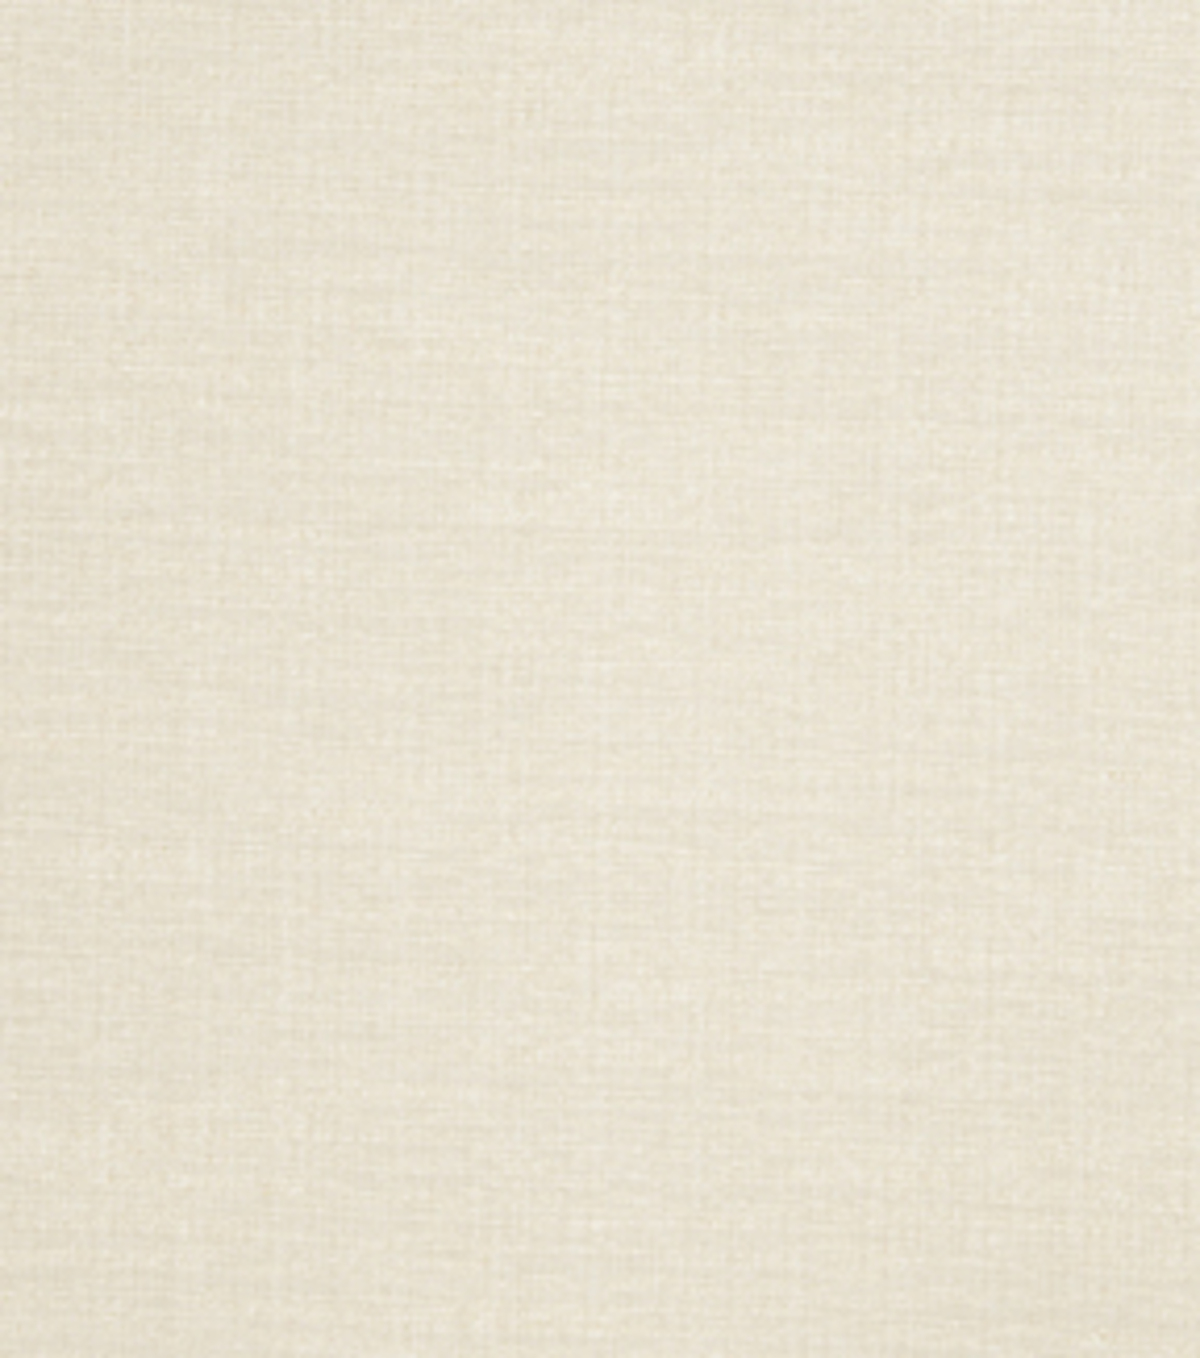 Home Decor 8\u0022x8\u0022 Fabric Swatch-Signature Series Texture Ivory